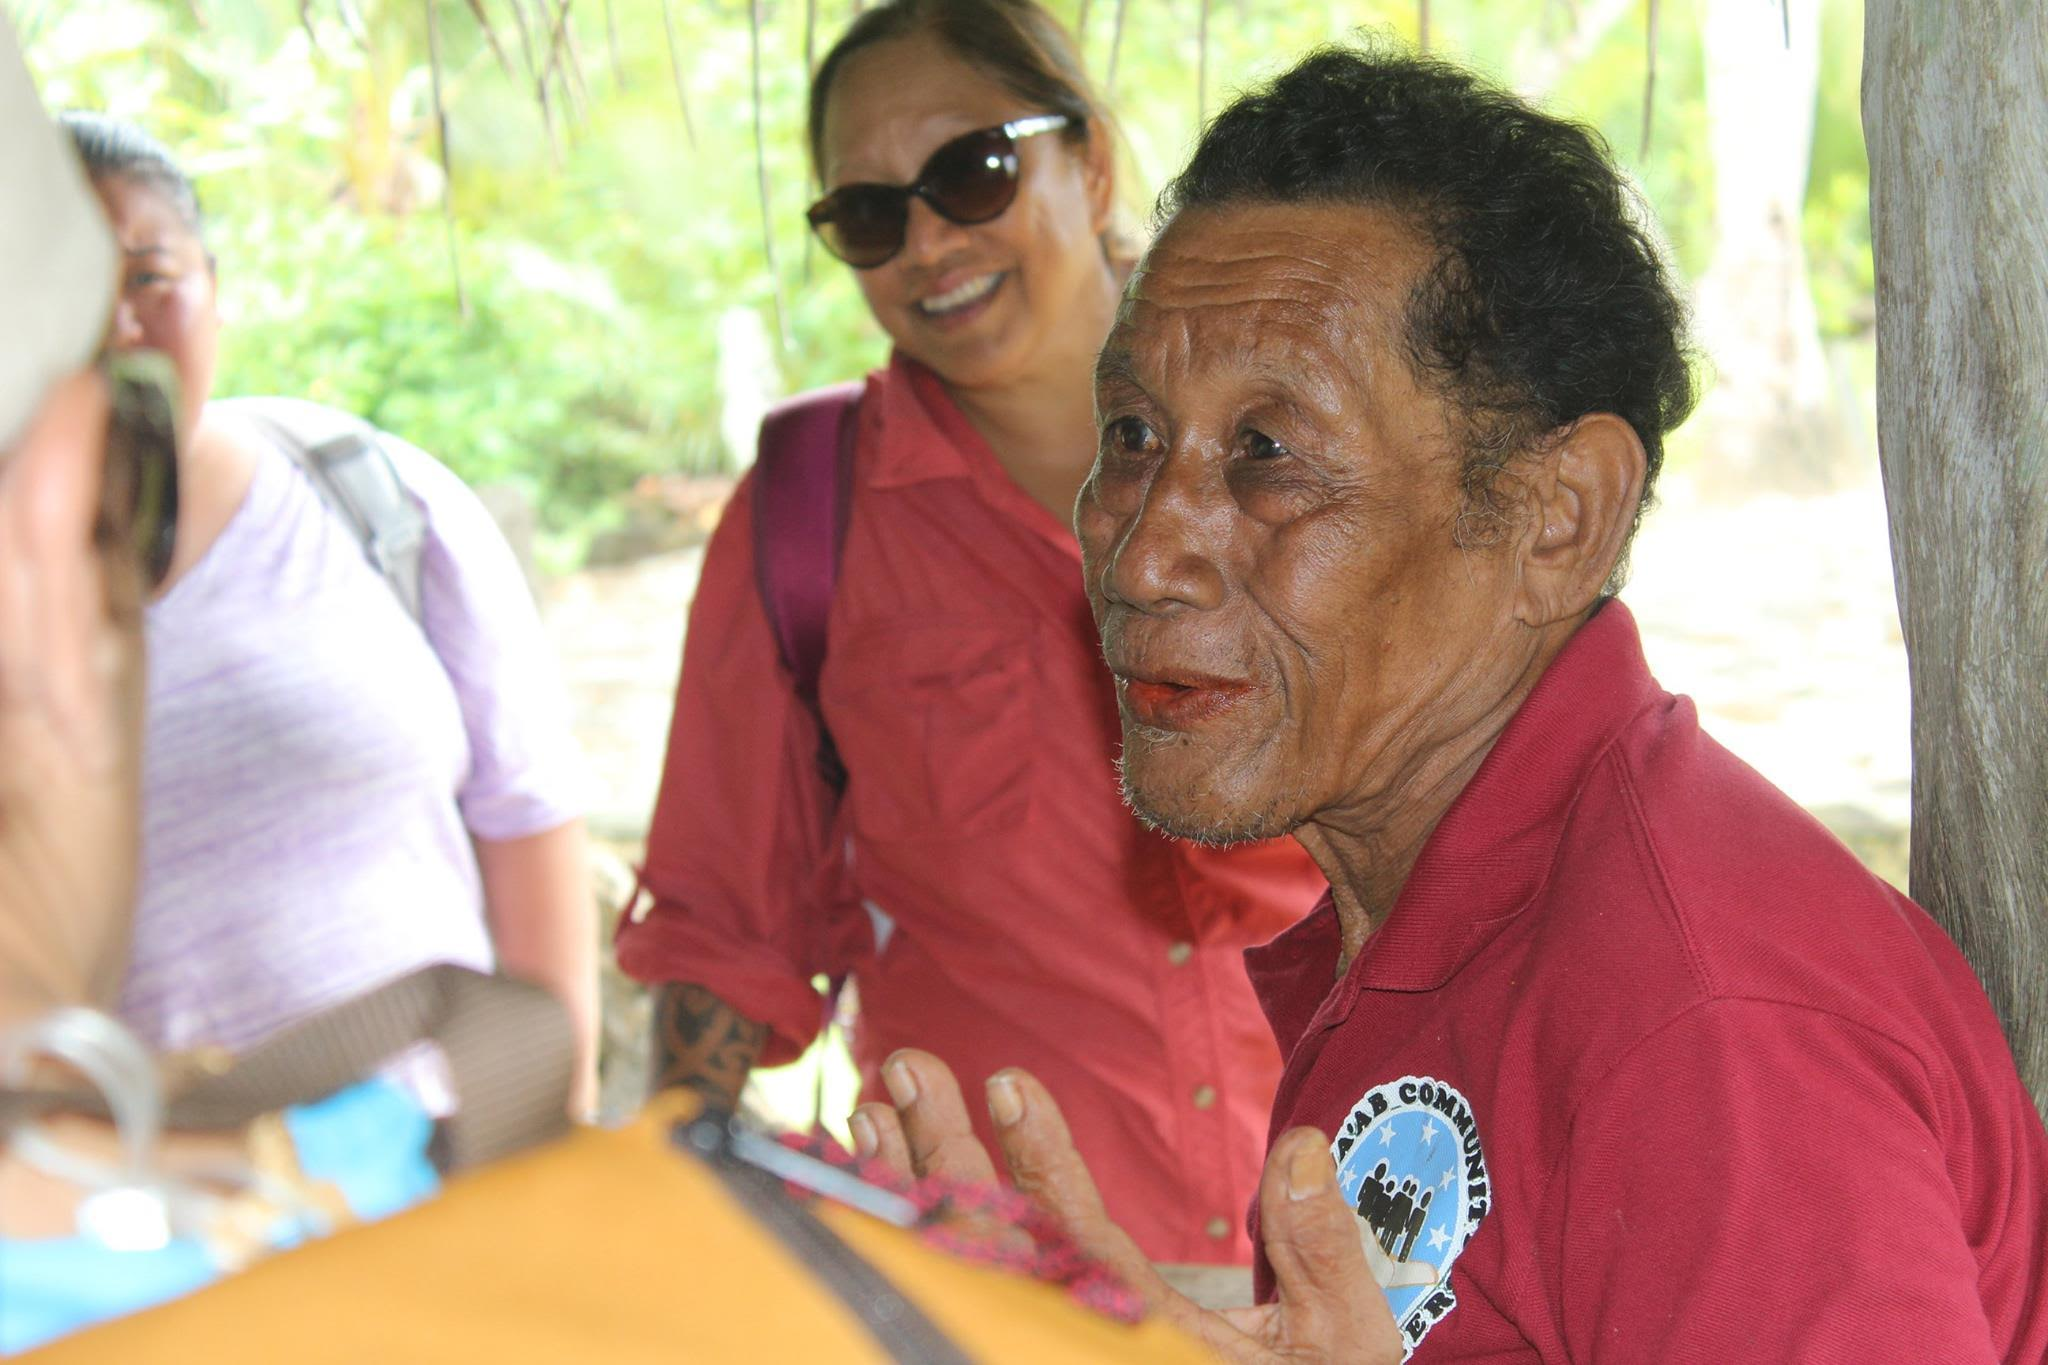 Maprine Ruechugrad discusses traditional Yapese dance and history, in the Village of Tomil, Yap.